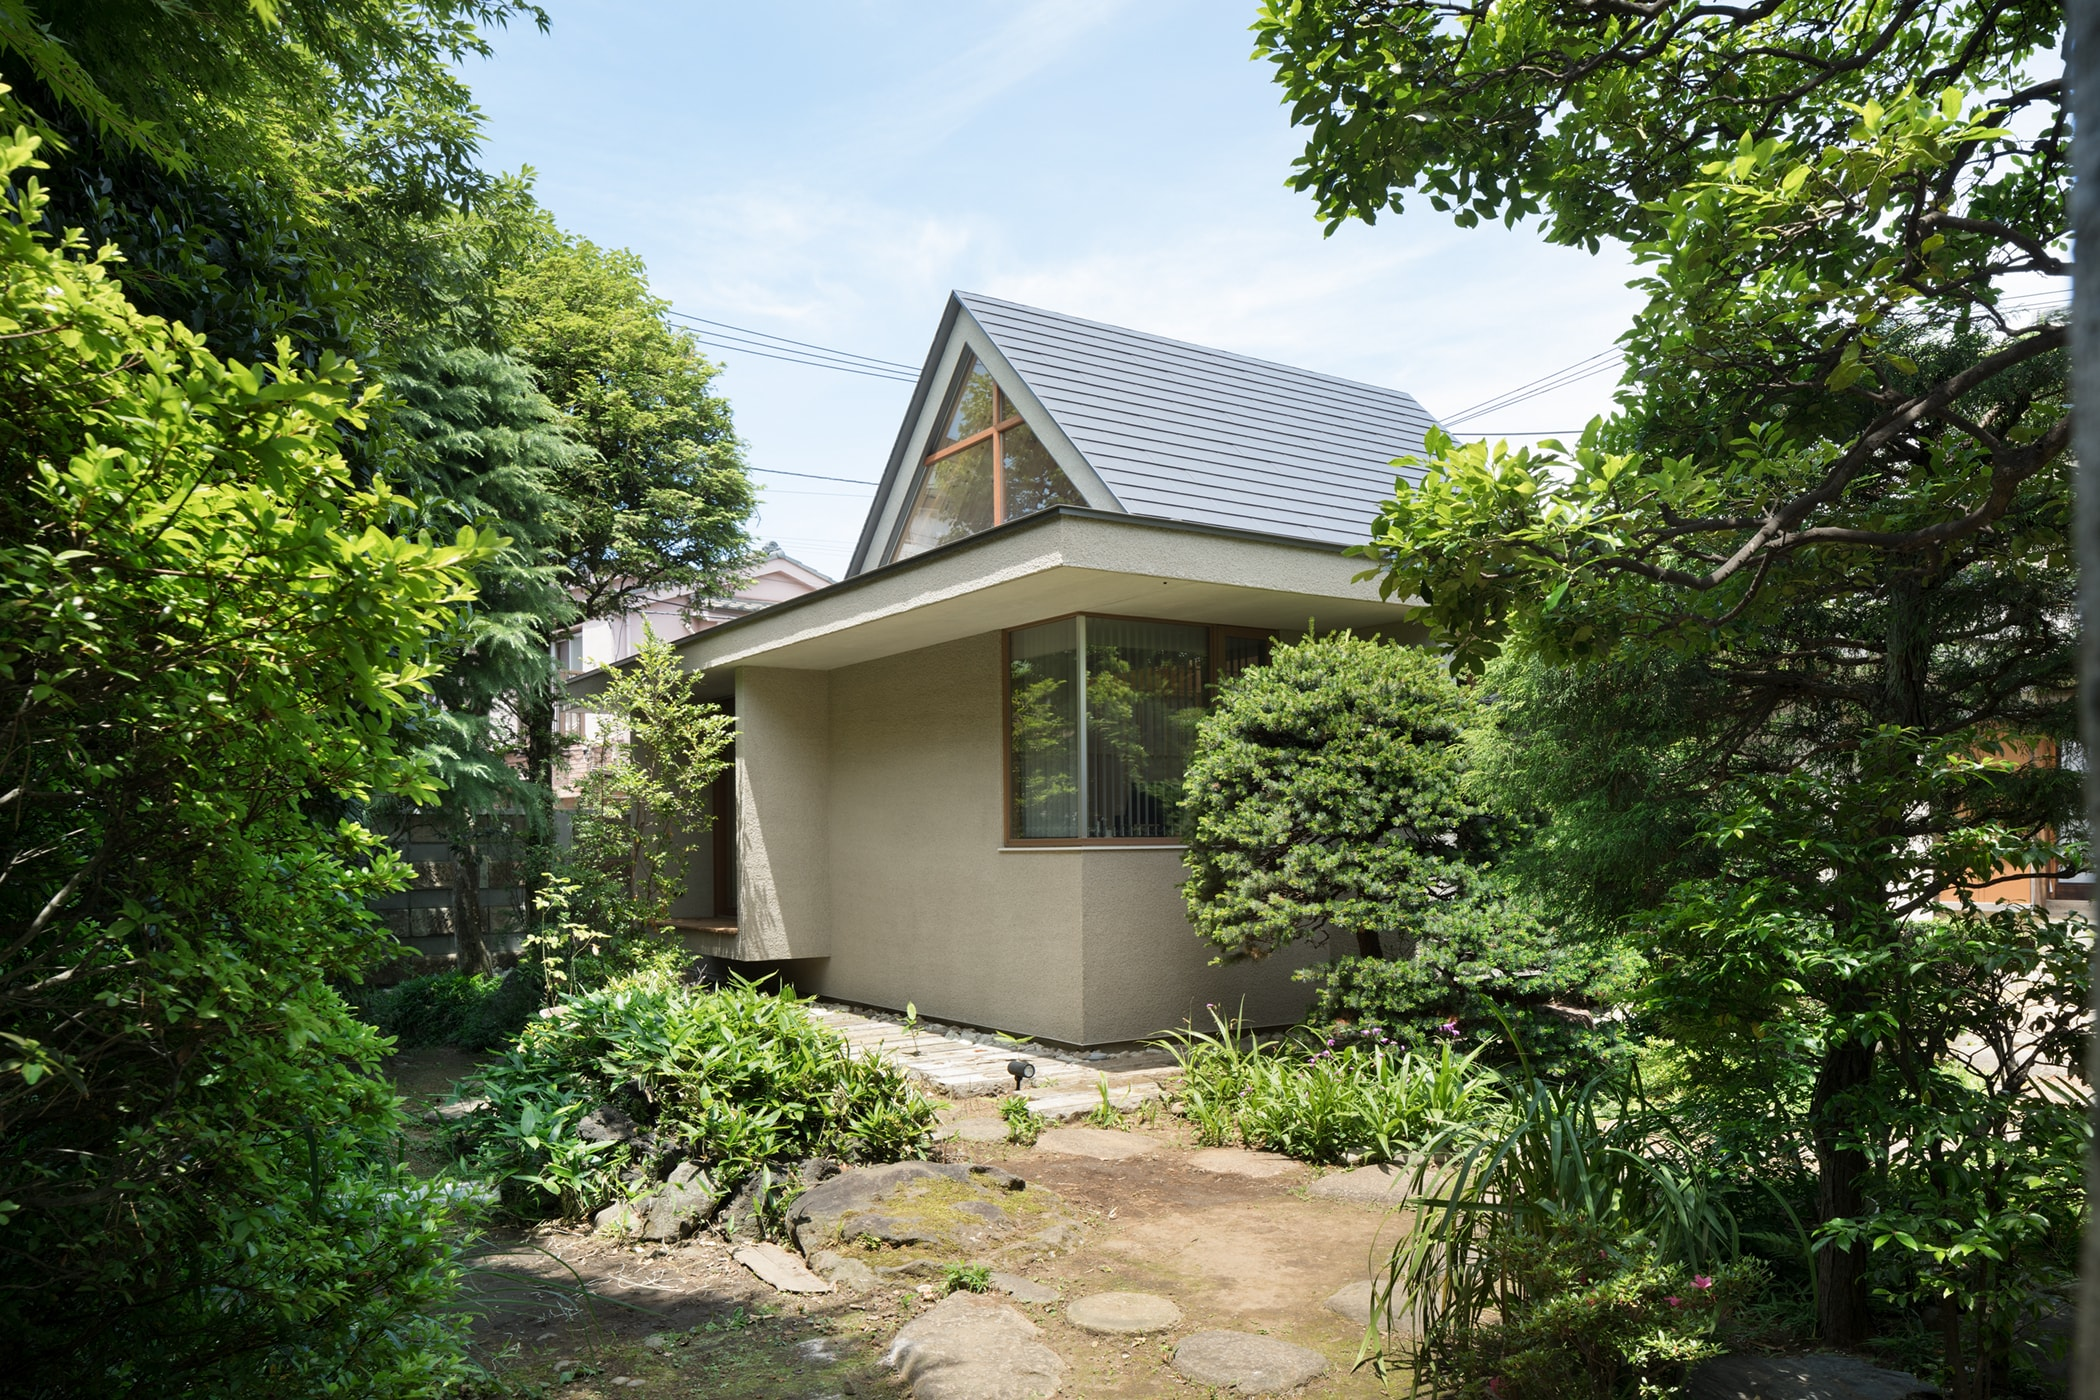 hiroki tominaga atelier 入母屋の離れ house with ducth gable roof